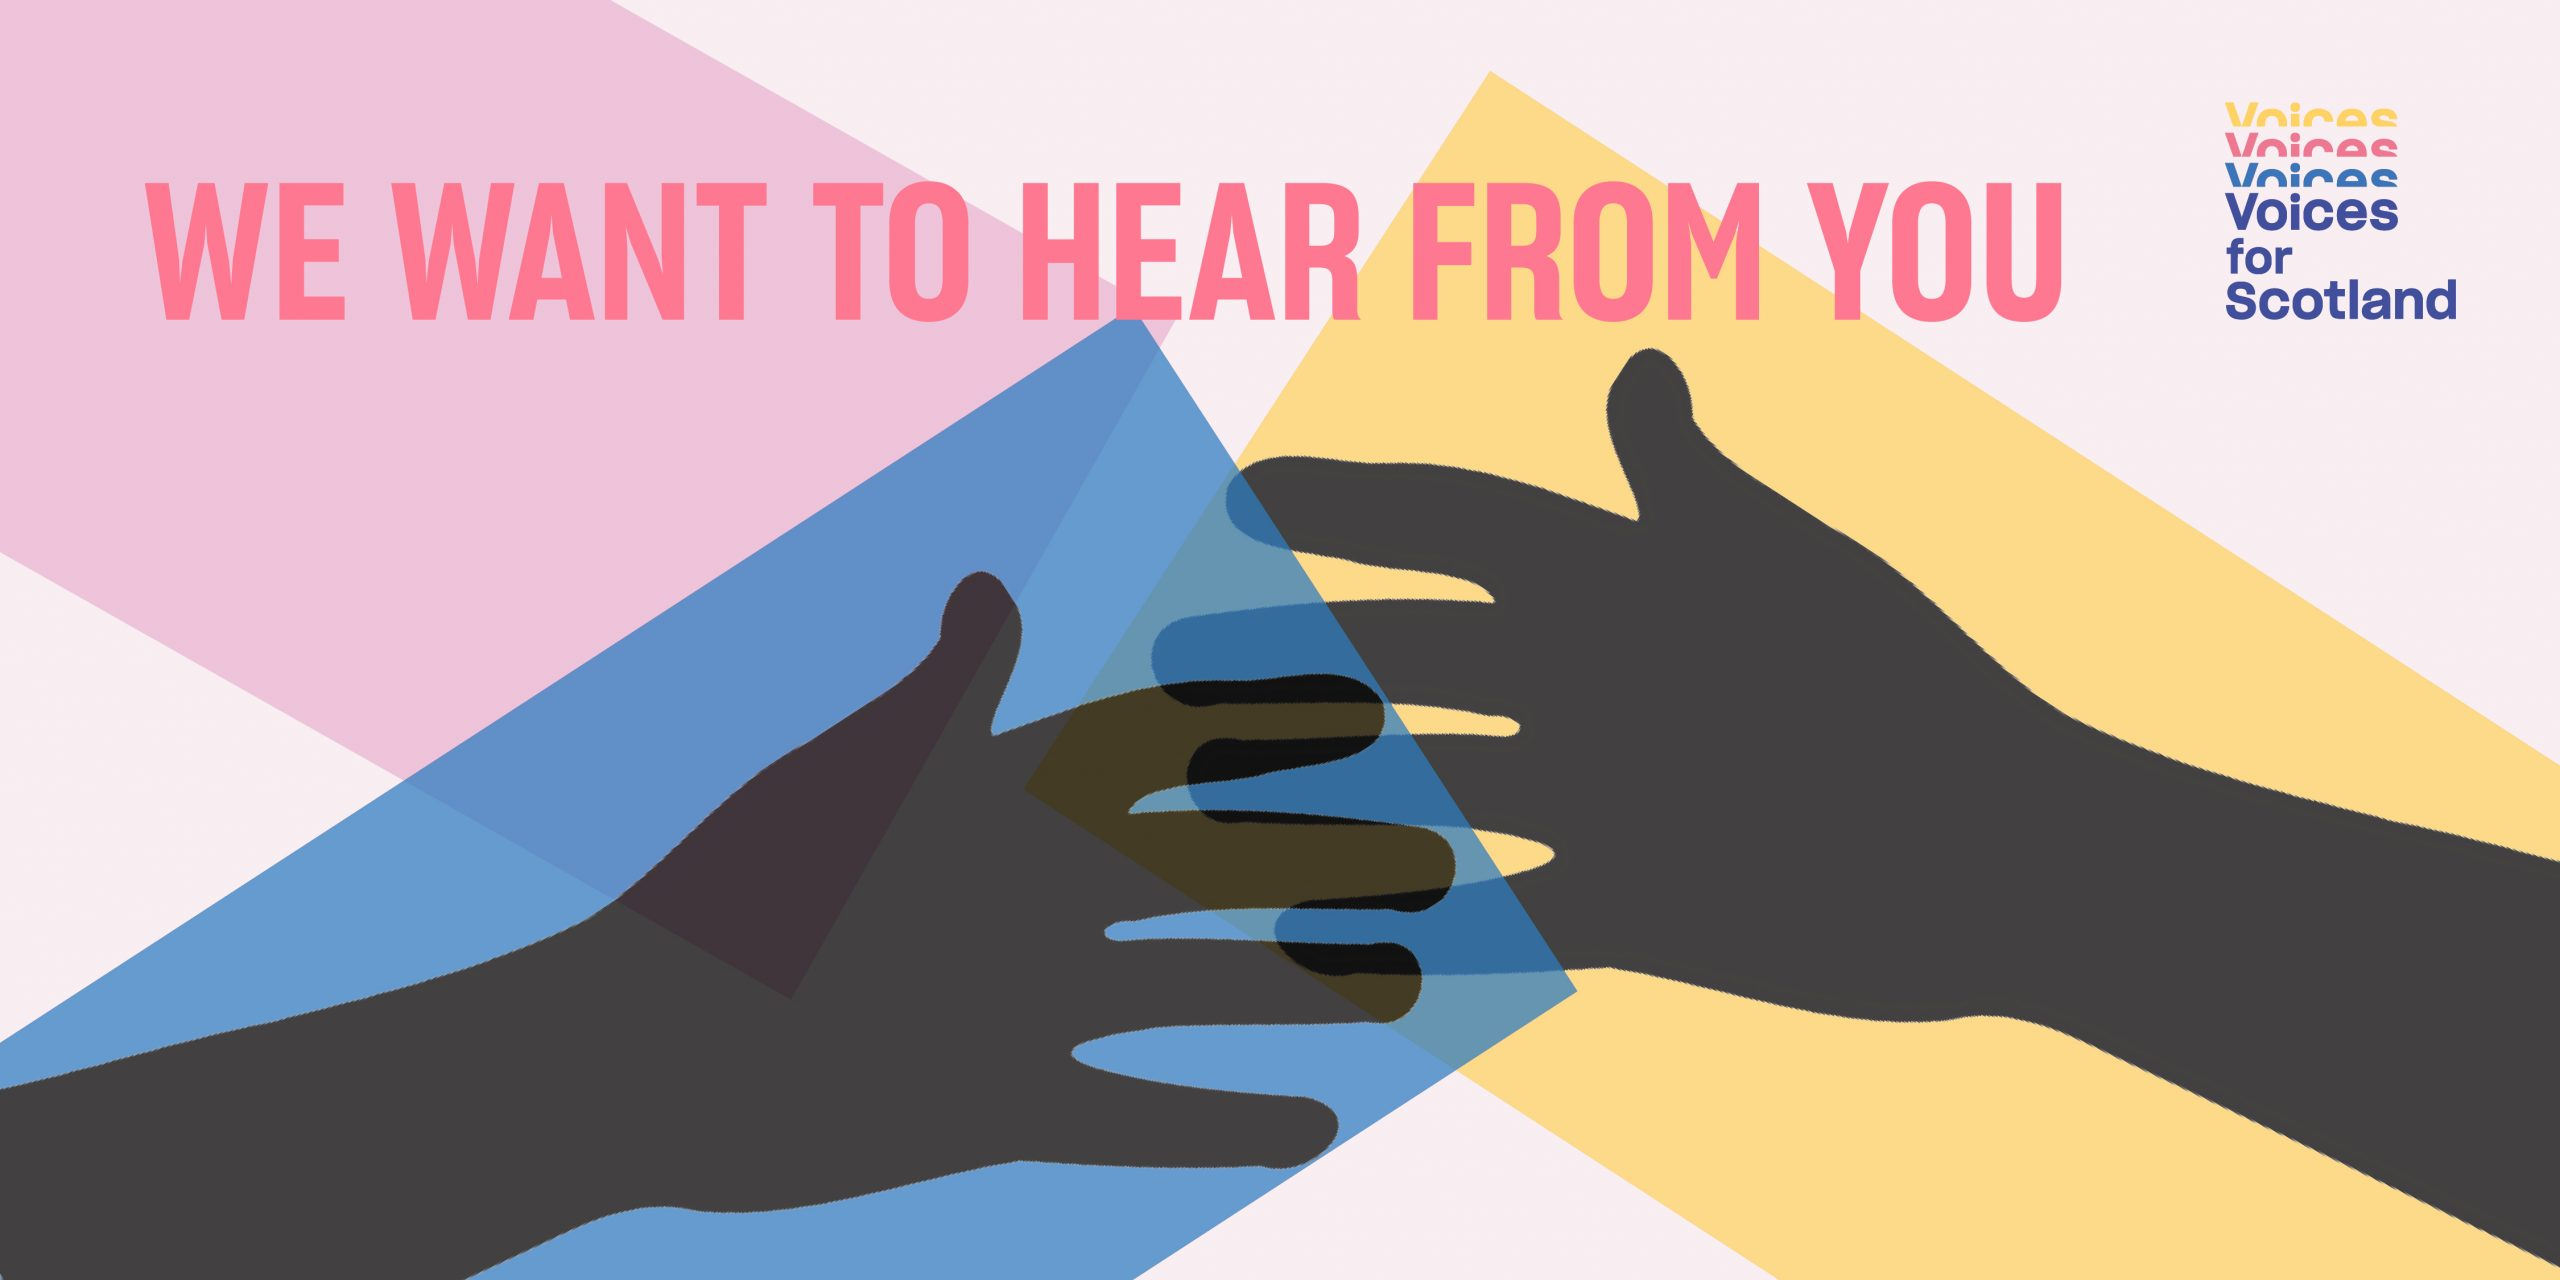 Colourful graphic image with hands and title 'we want to hear from you'